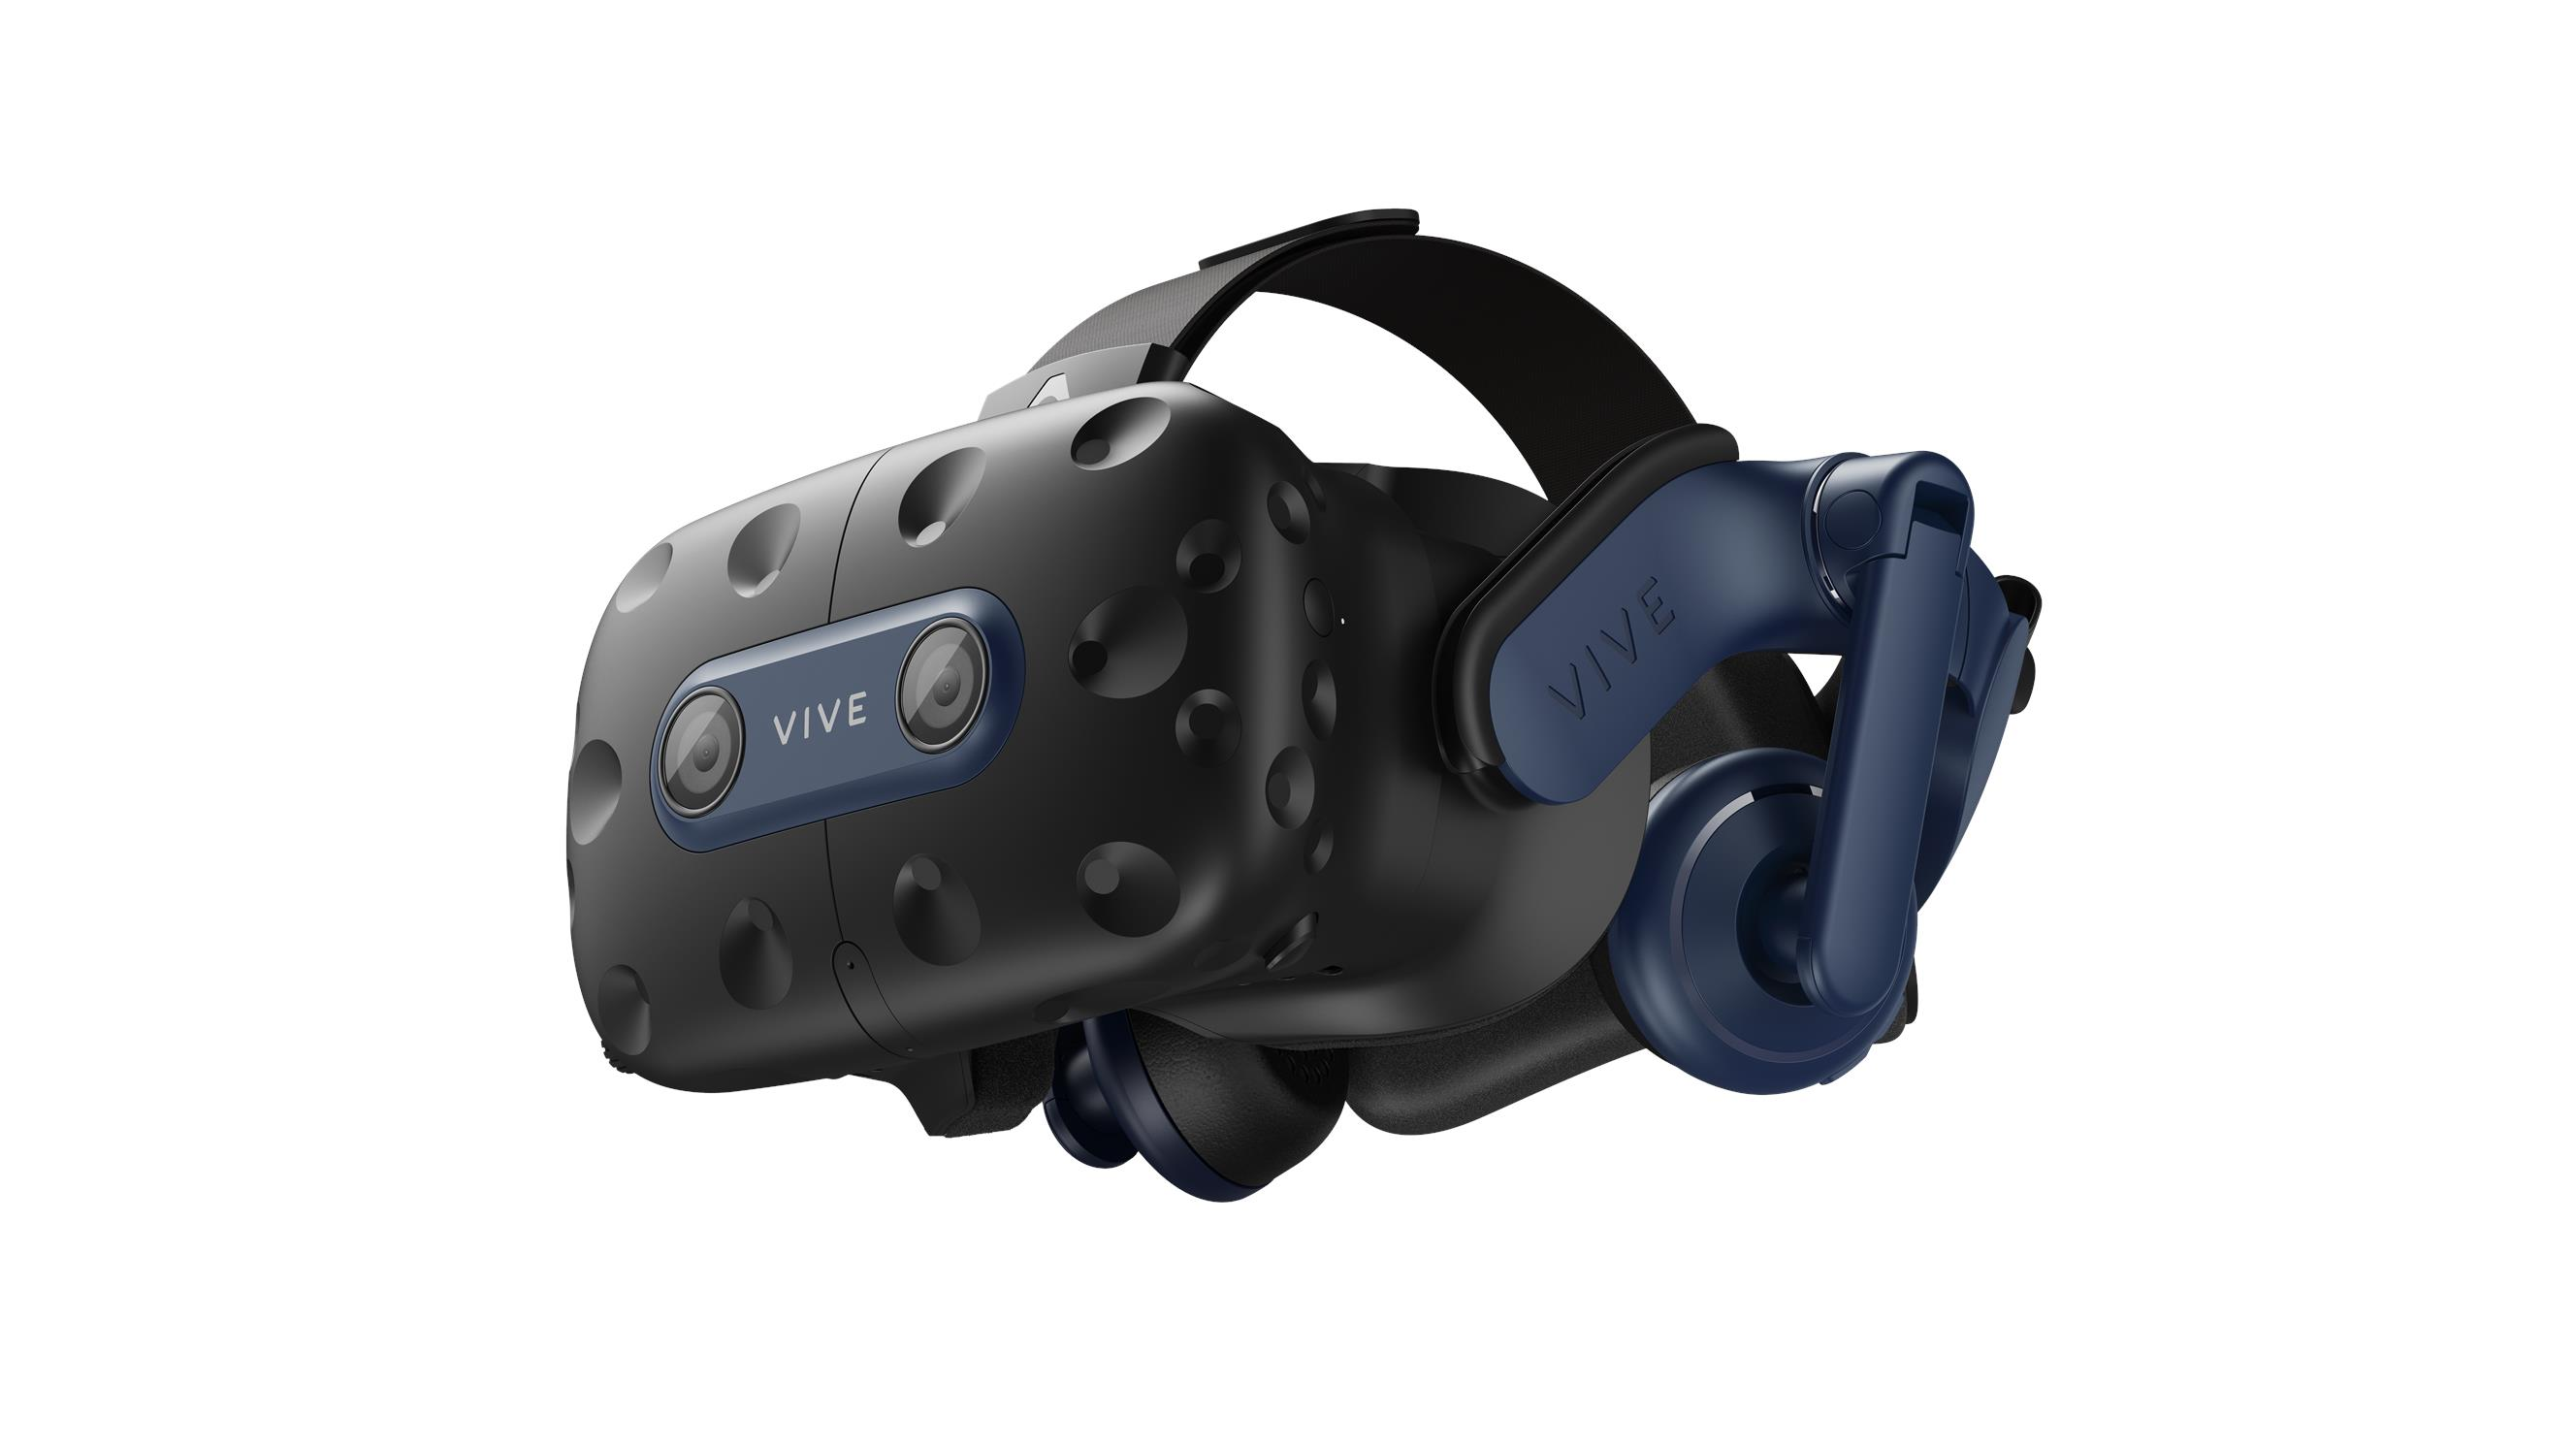 HTC Vive Pro 2 announced, coming June 4 for $749